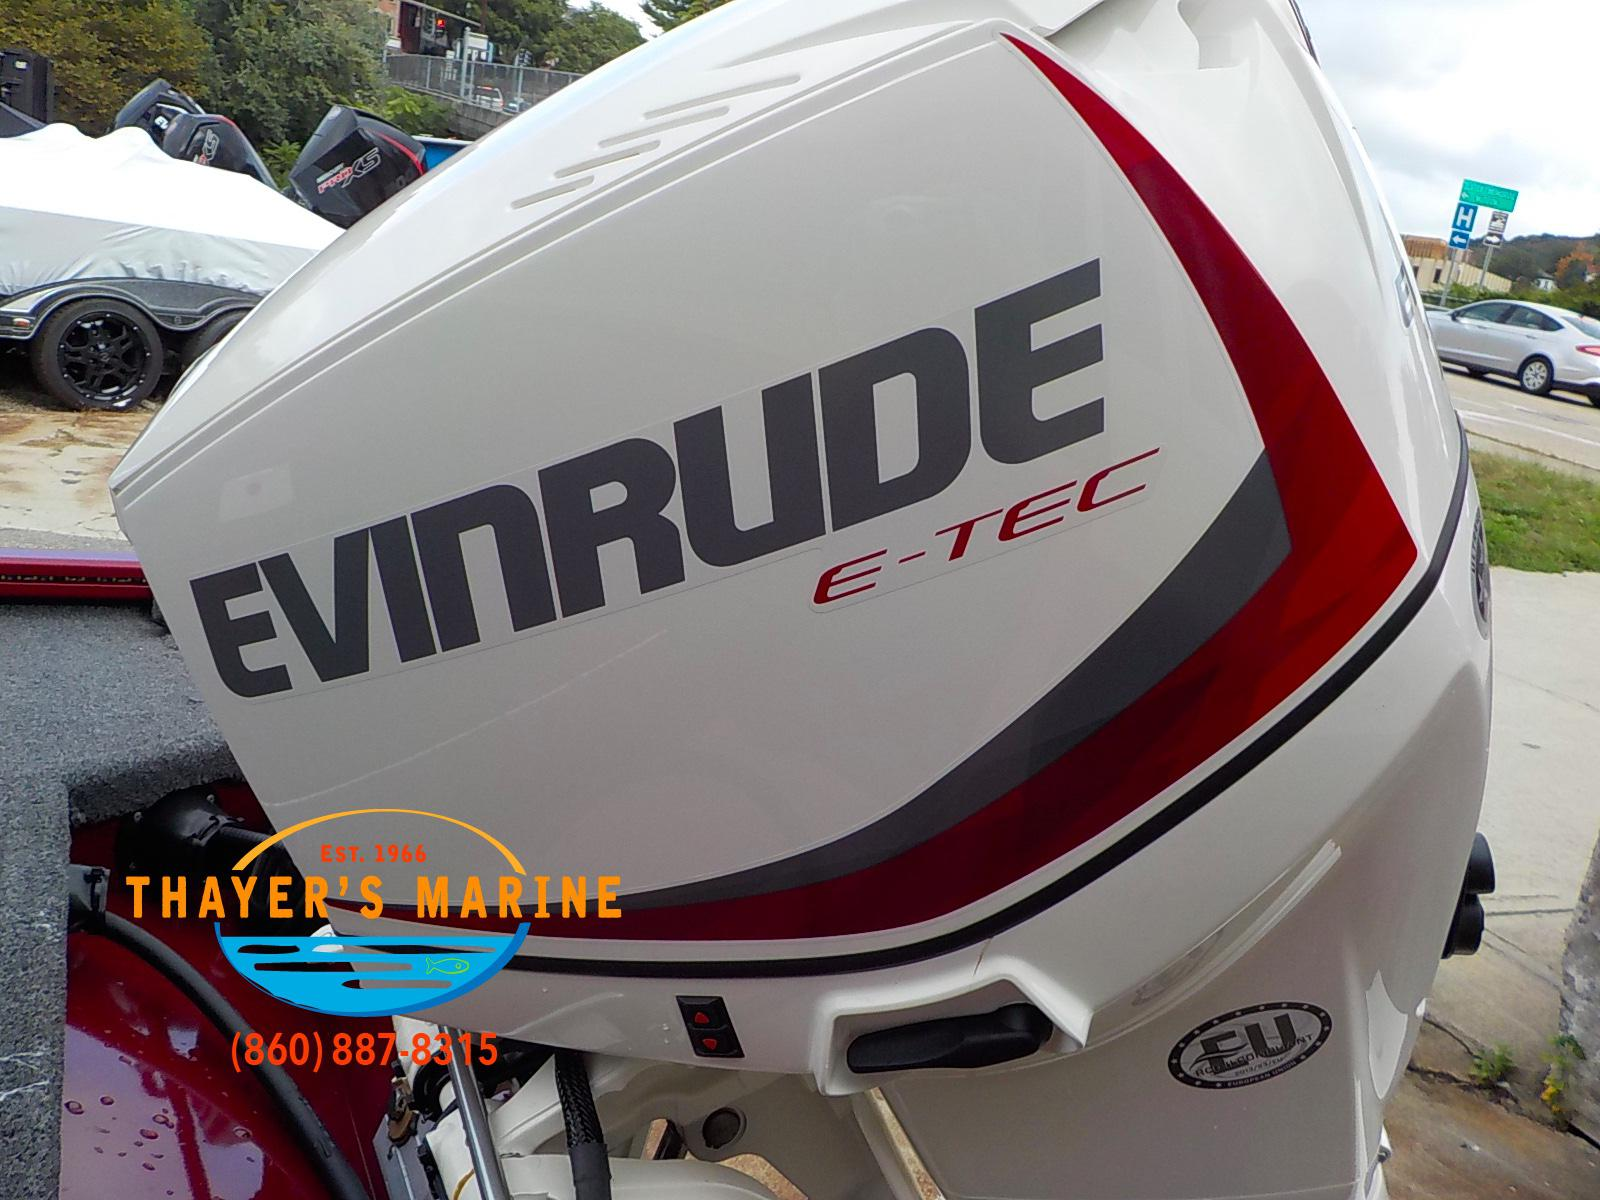 2019 Lund boat for sale, model of the boat is 1775 Renegade & Image # 30 of 32